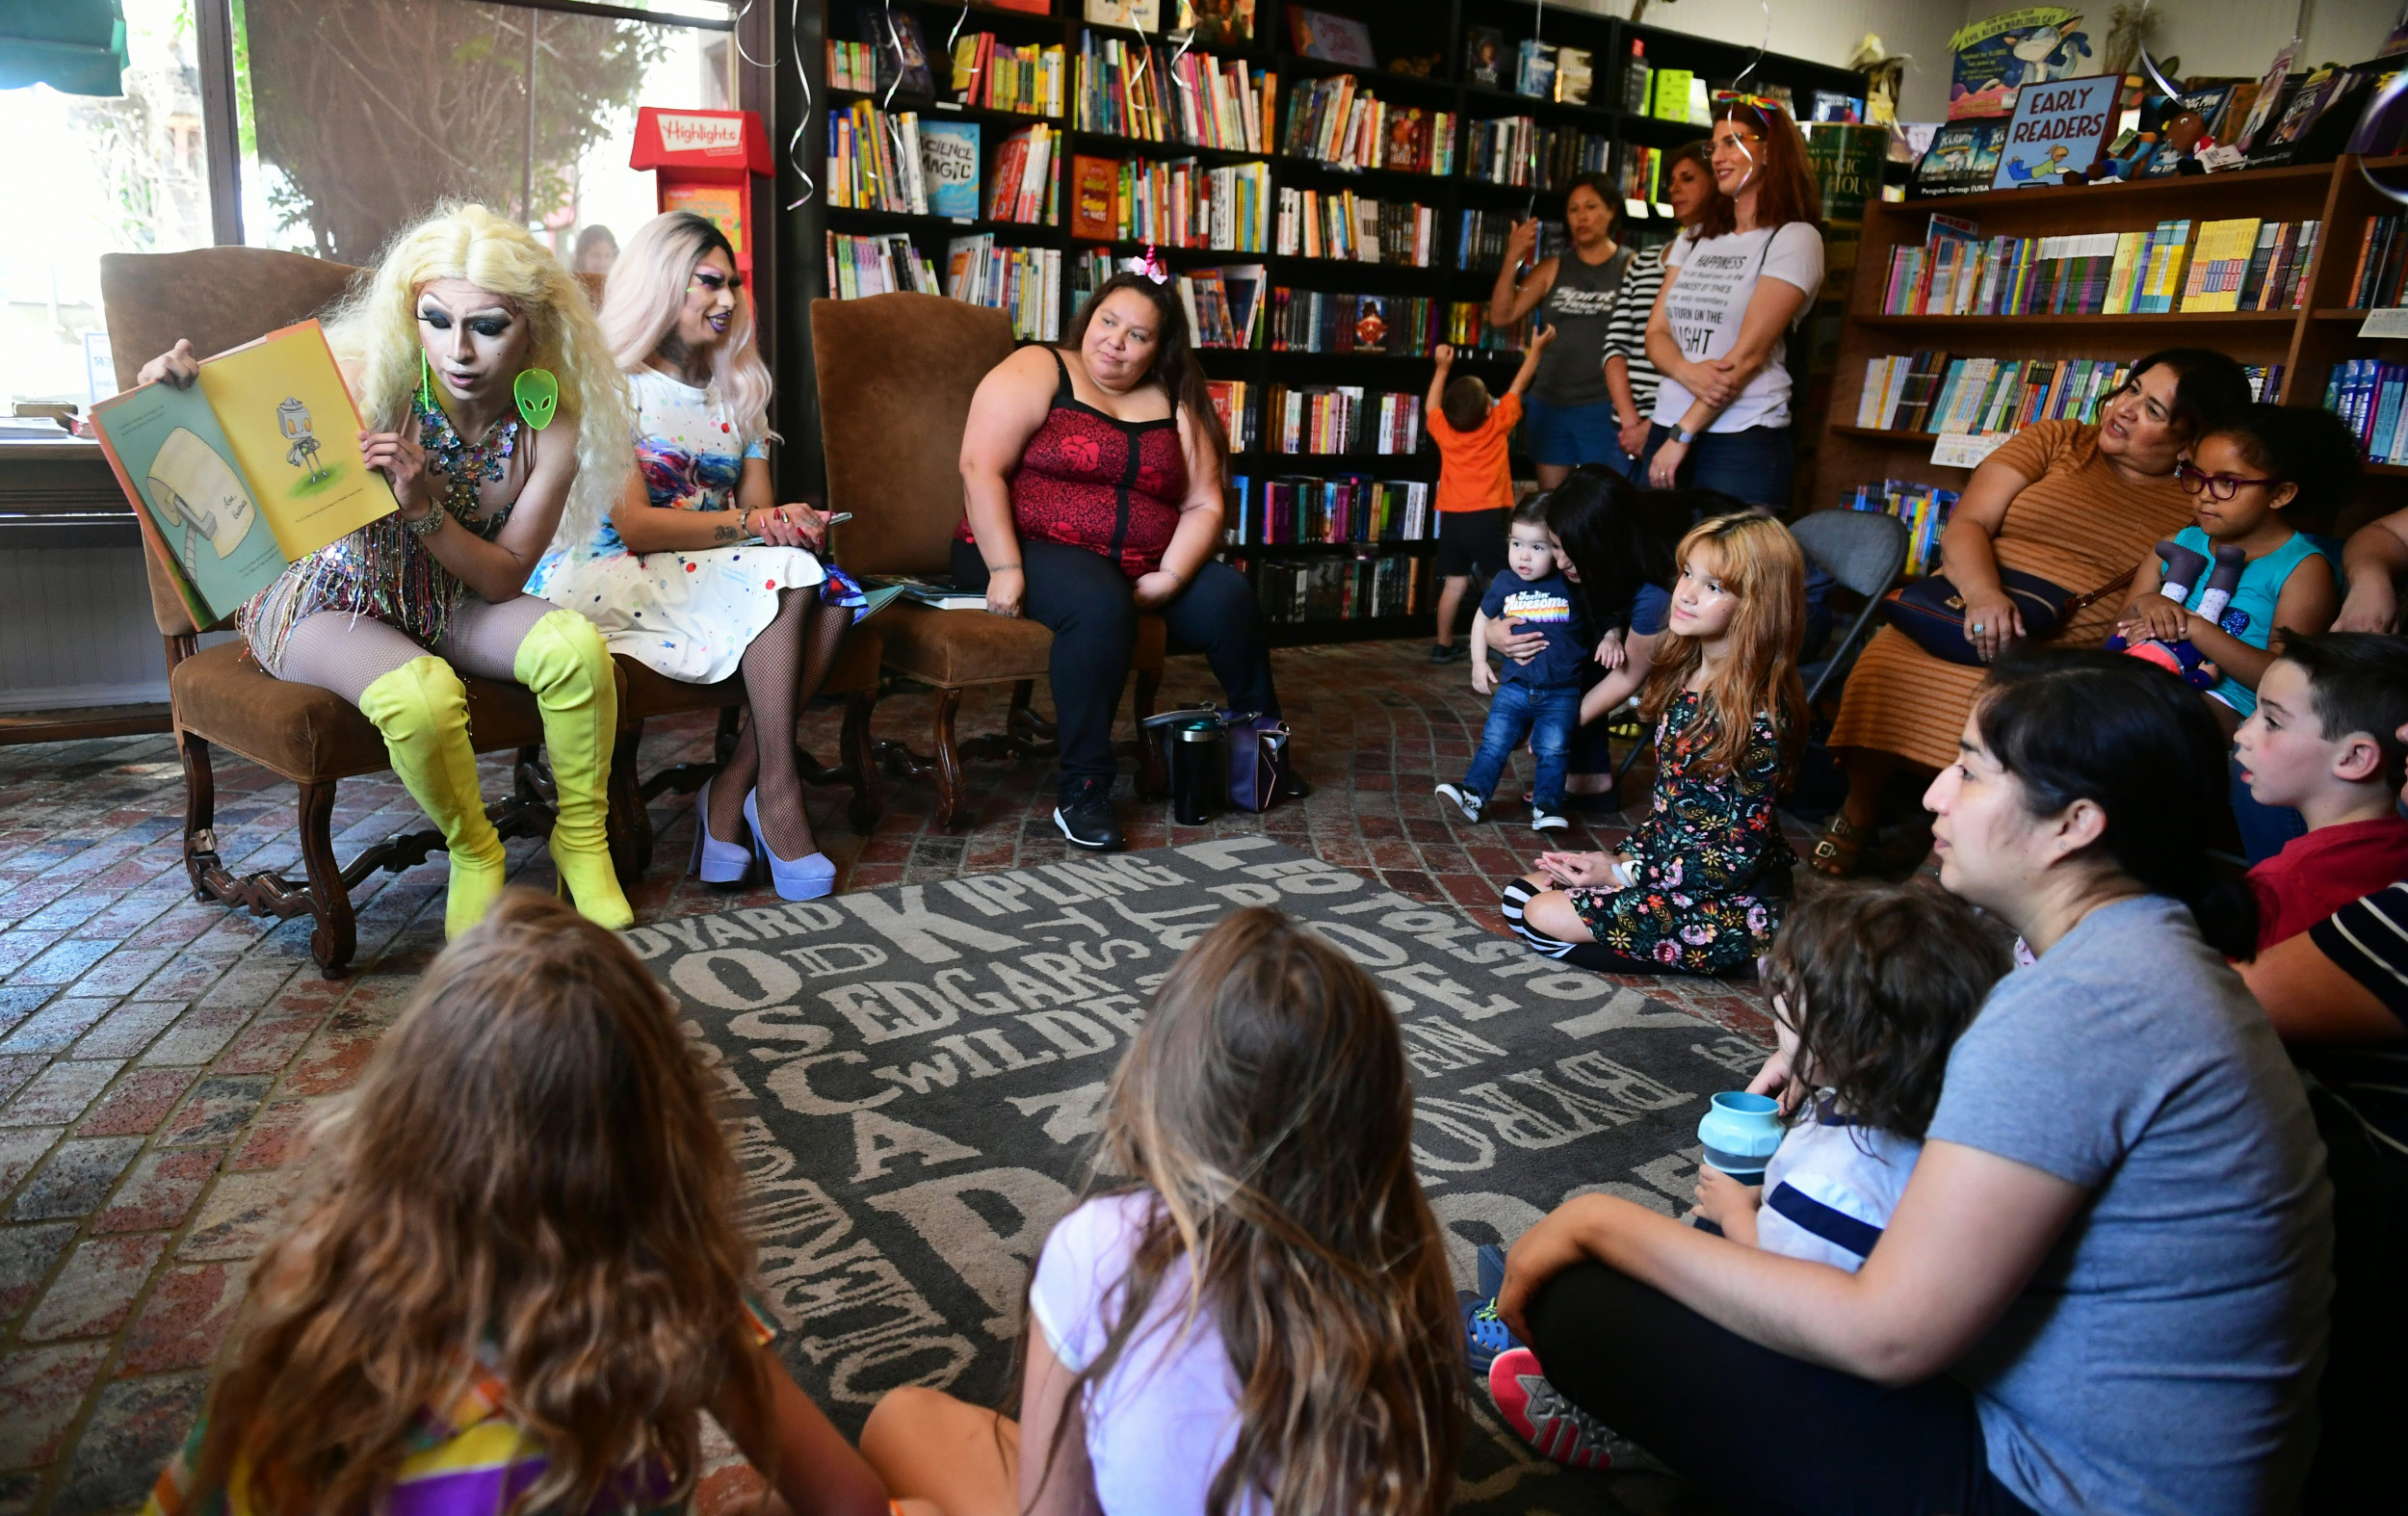 Drag Queen Show at Children's Museum Canceled Due to 'Overwhelming Threats'